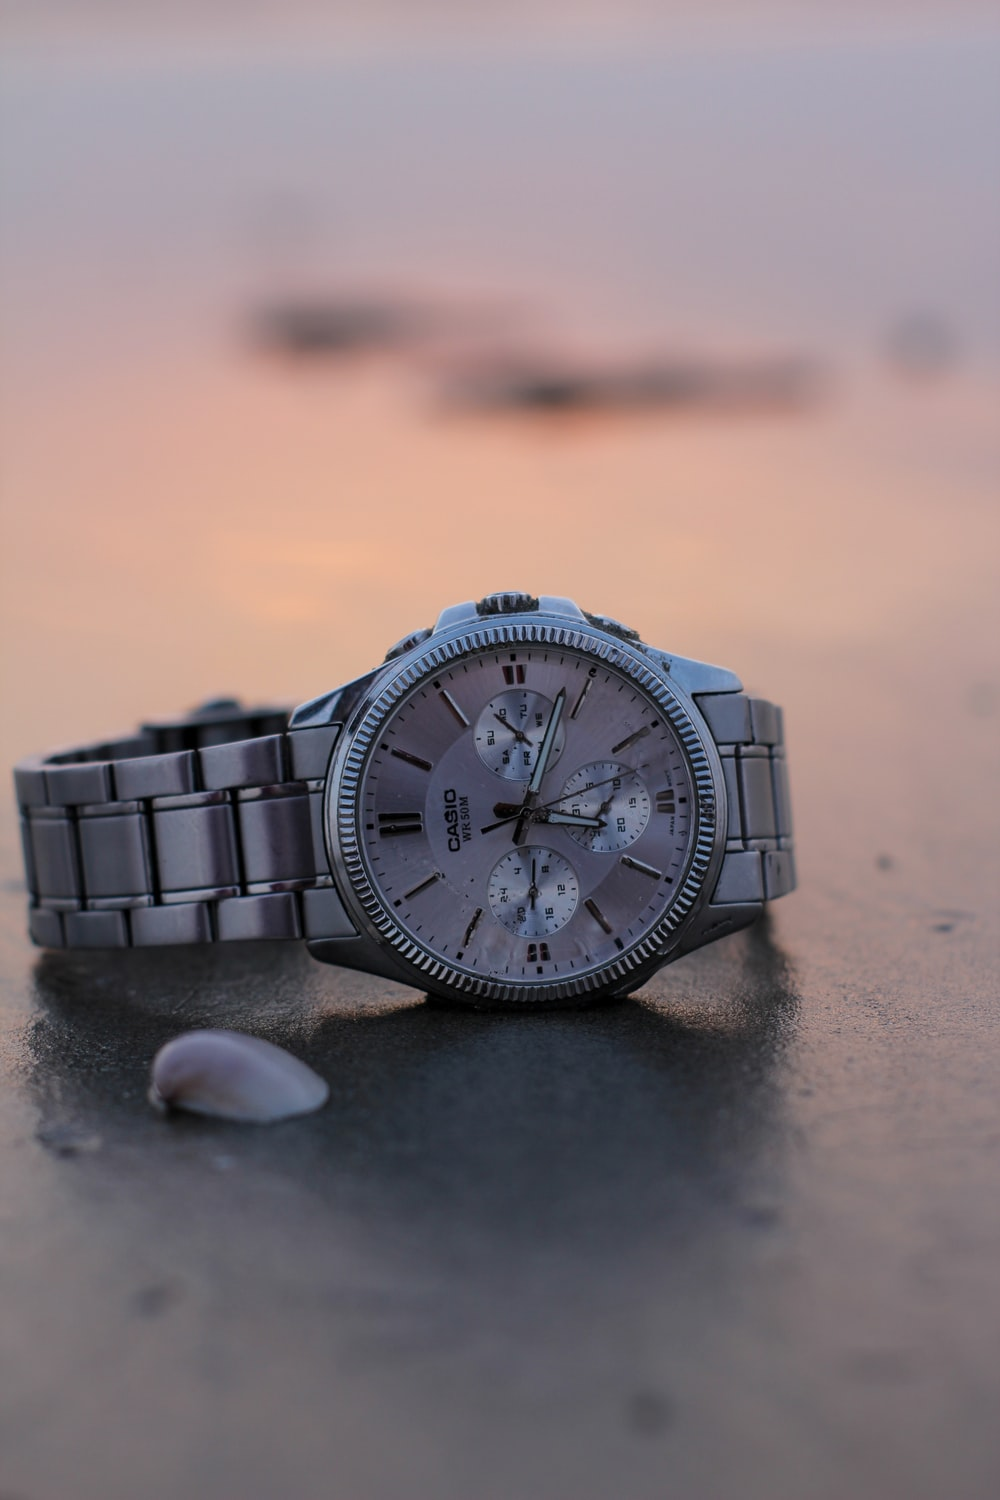 silver link bracelet round chronograph watch